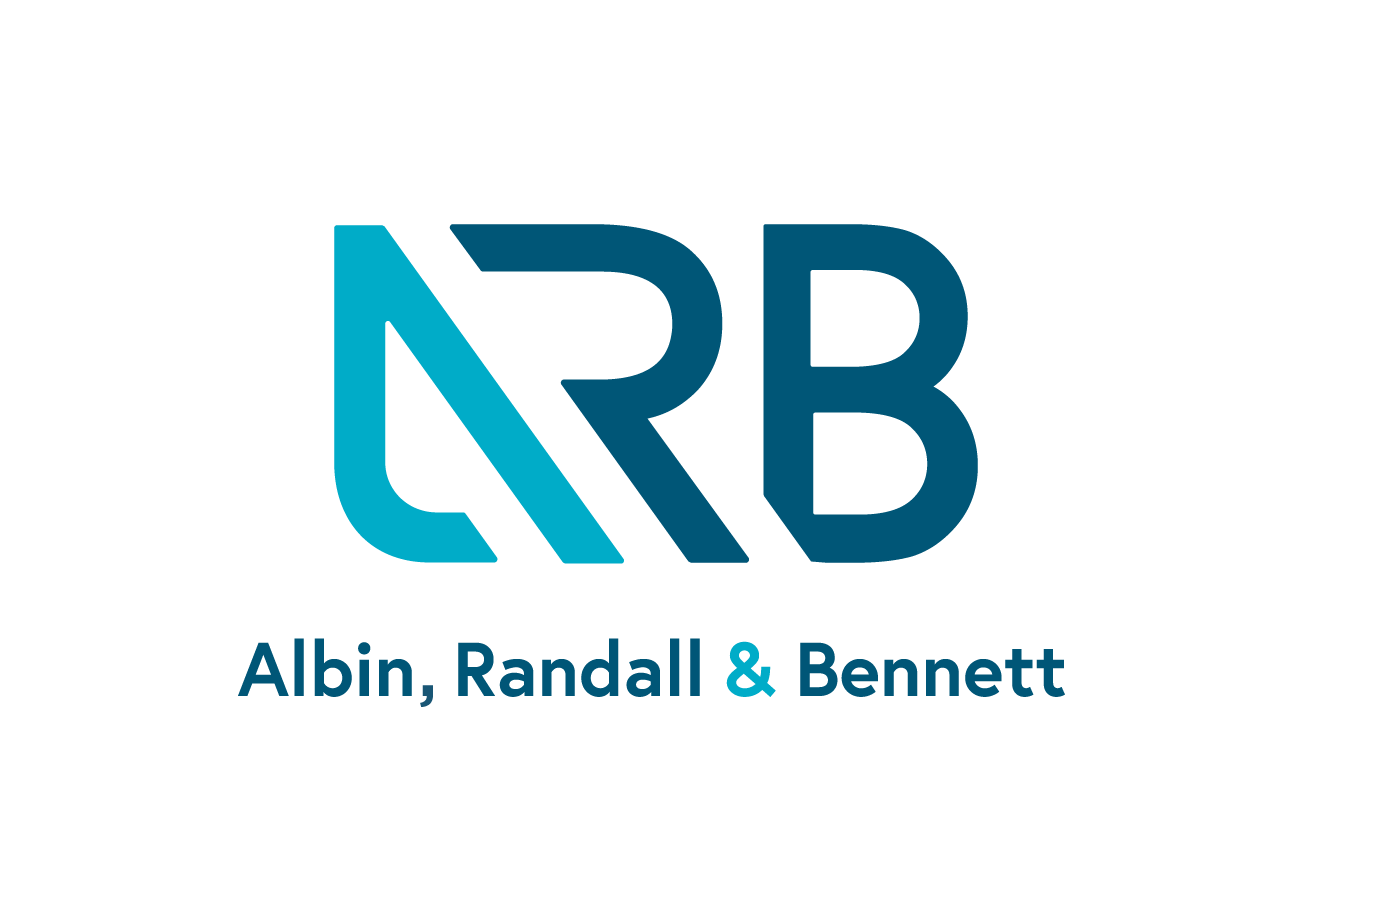 Logo_ARB_fullcolor_stacked.png